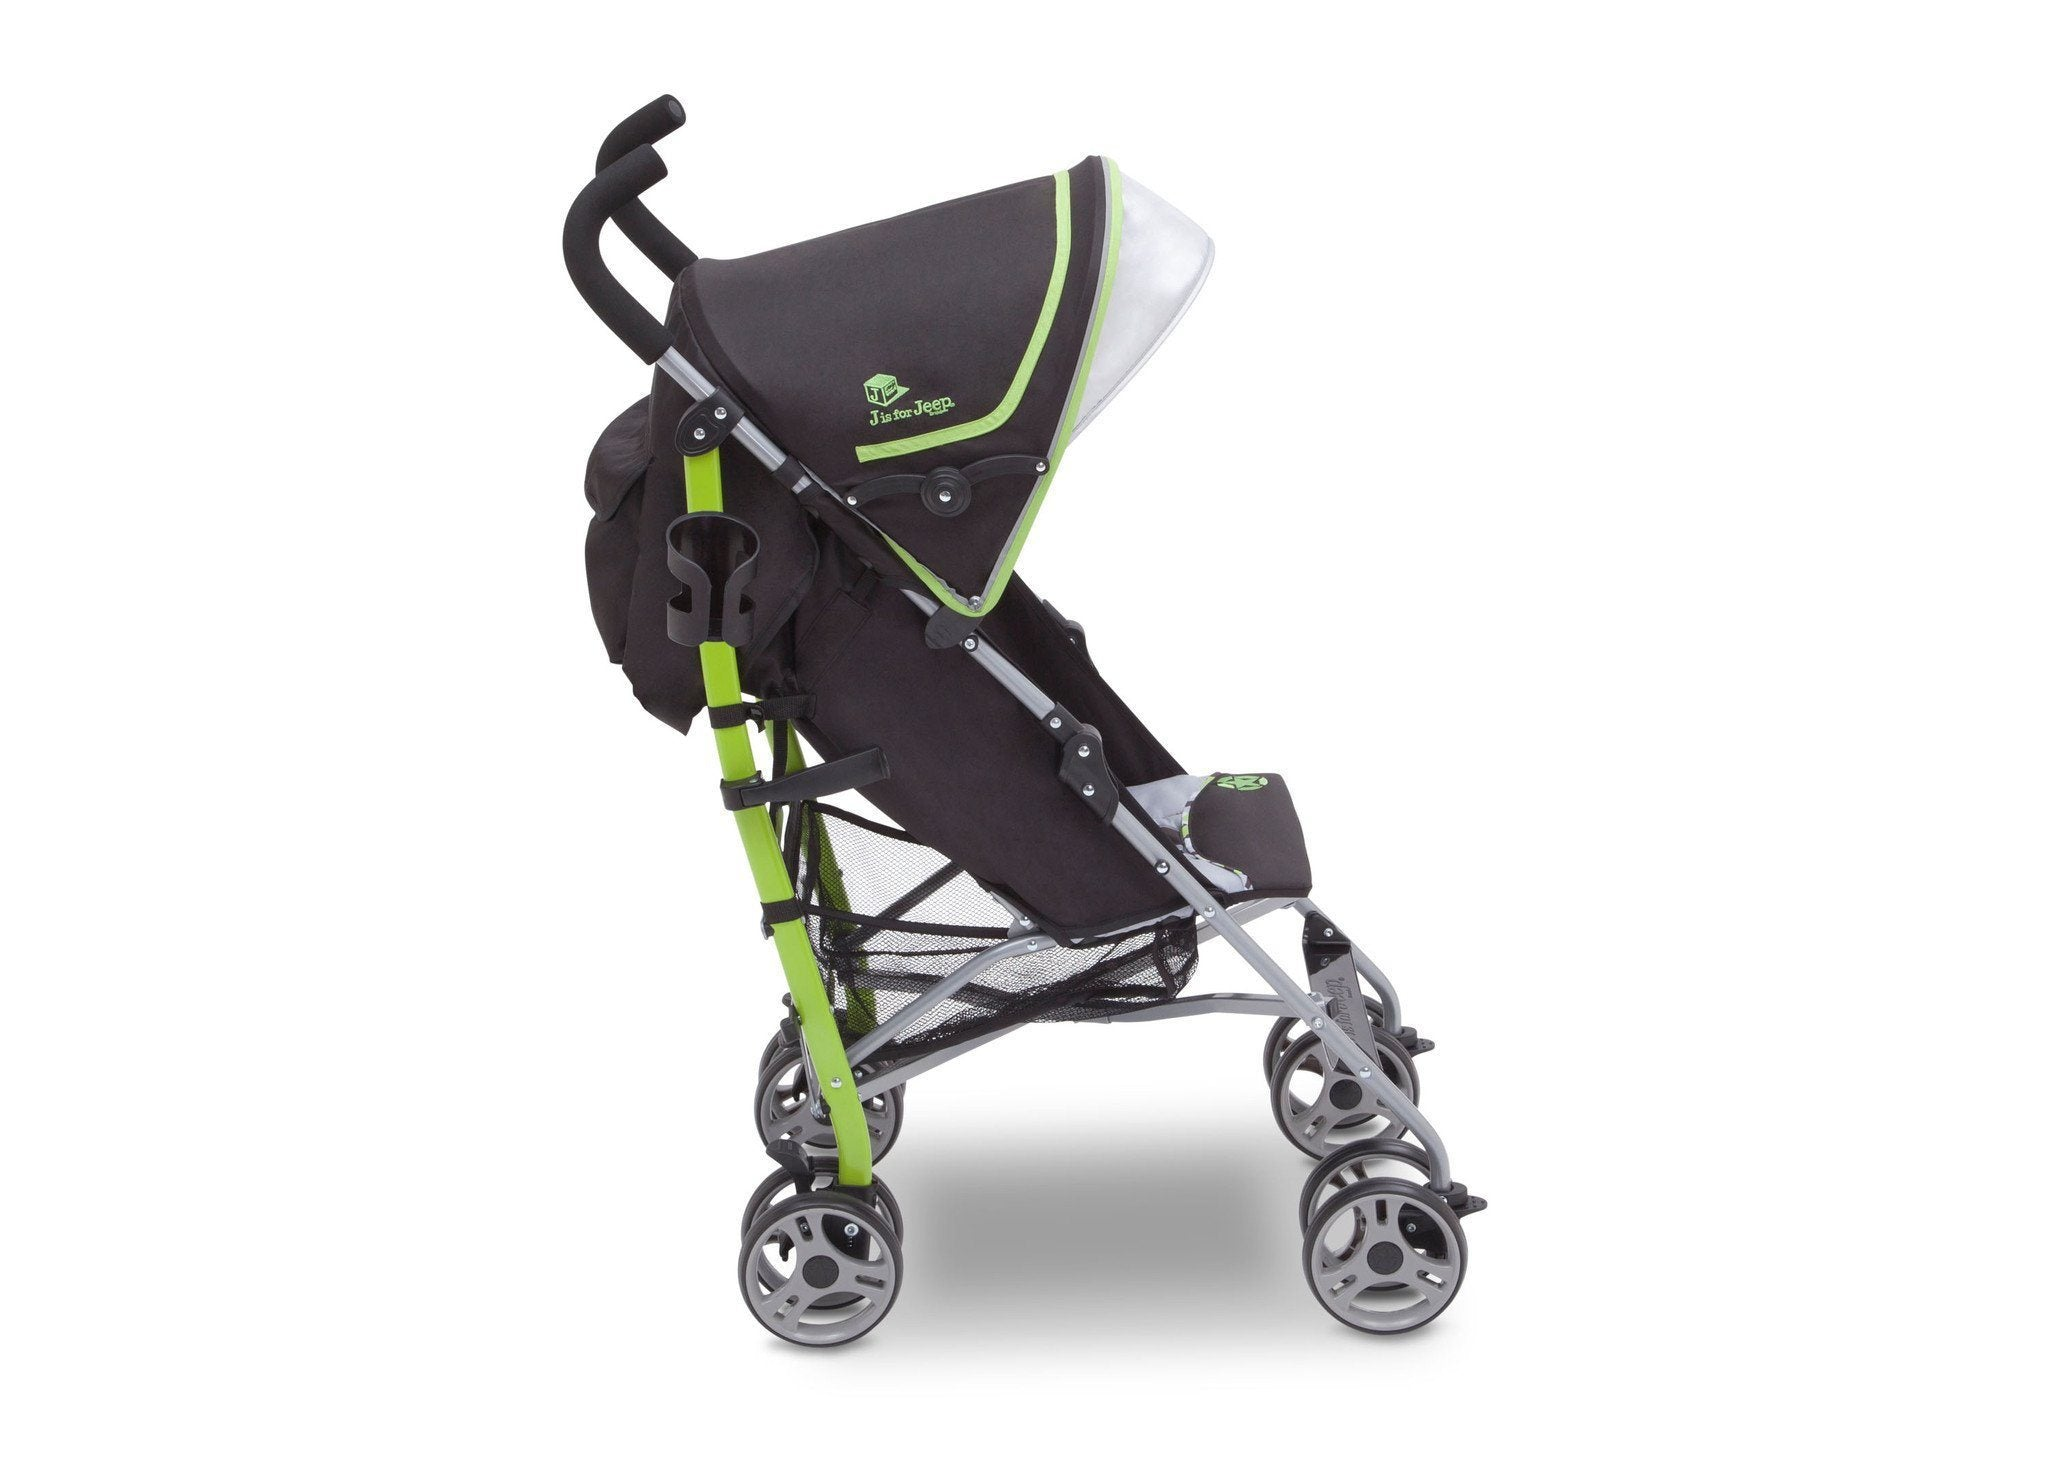 J is for Jeep Brand Camouflage Green (350) Scout AL Sport Stroller, Full Right View, a2a